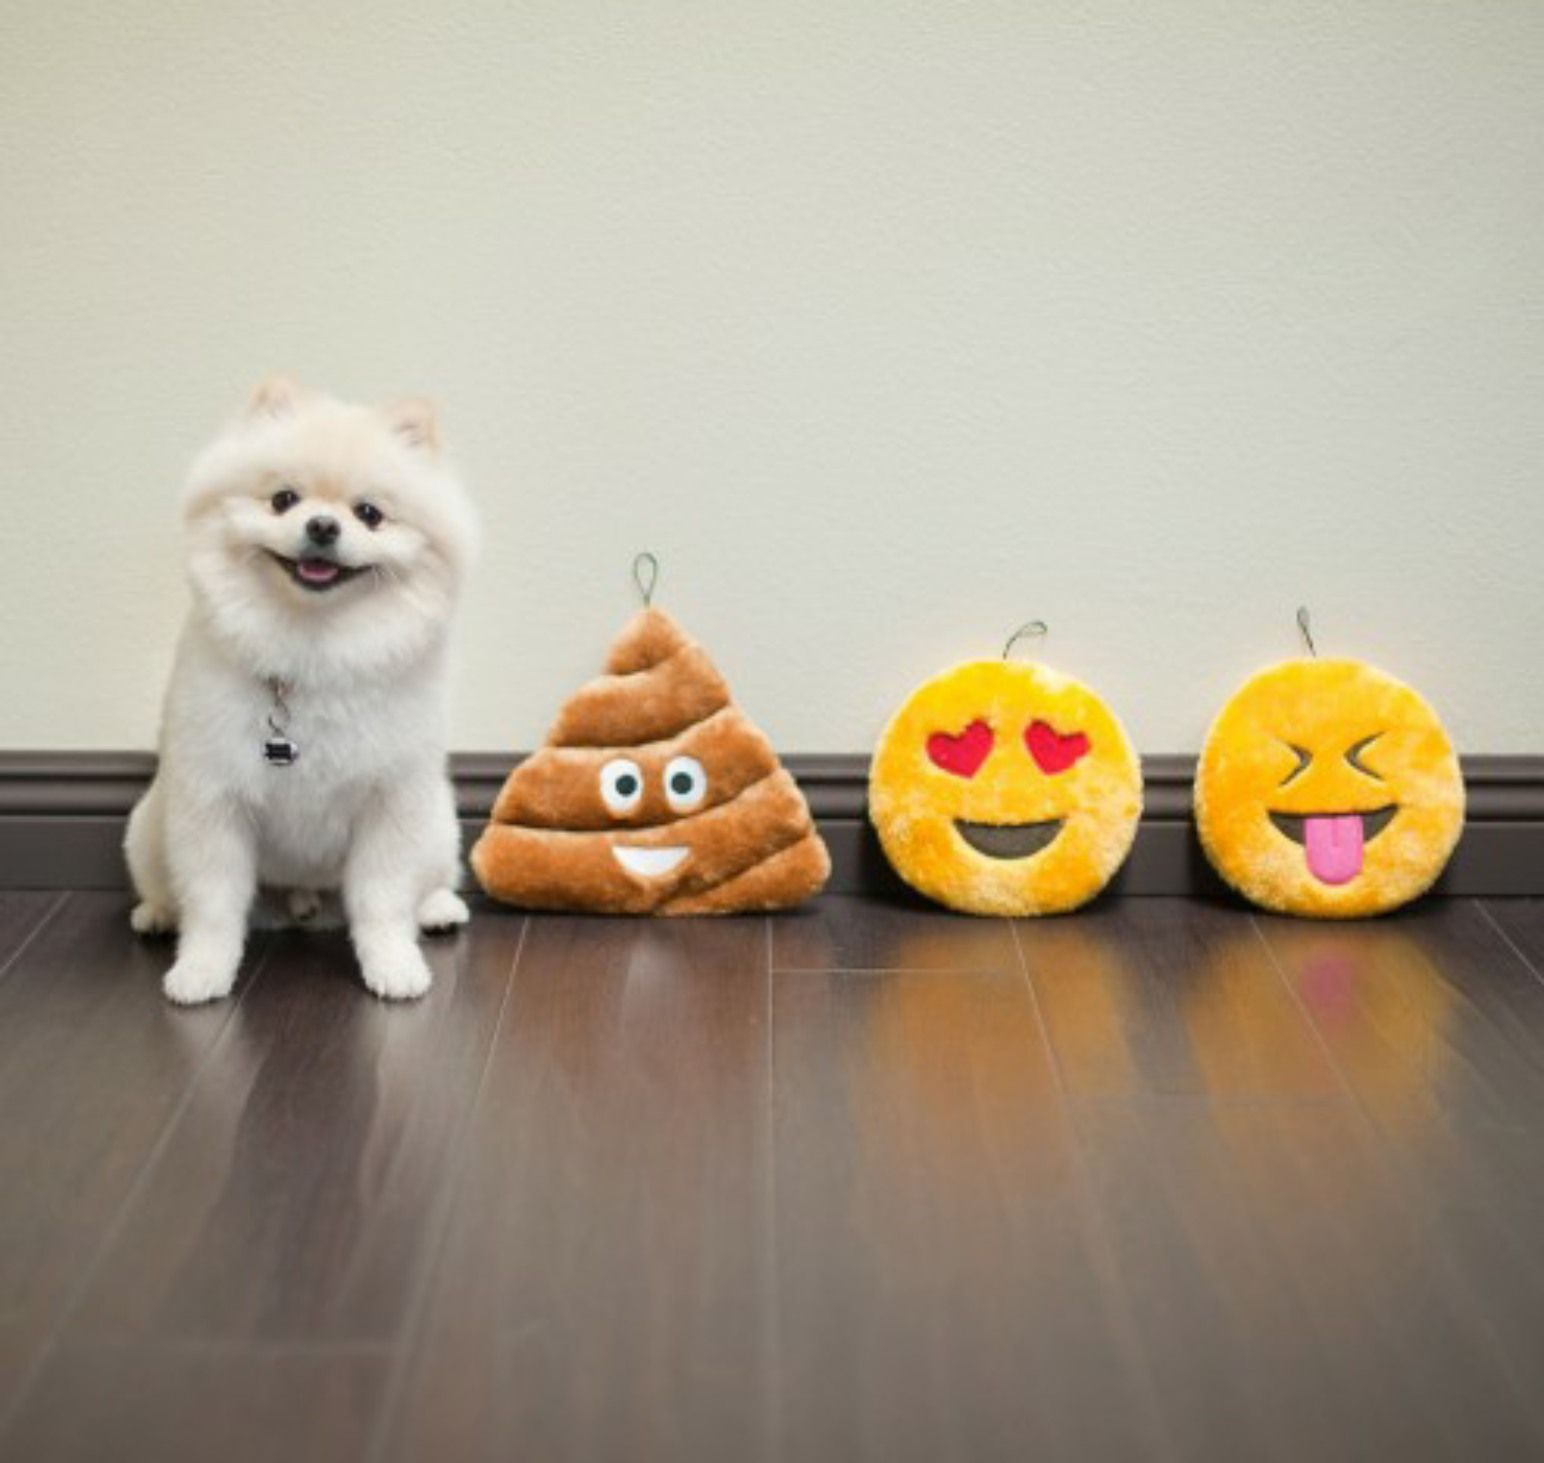 Emoji's for dogs! For when he needs to express himself